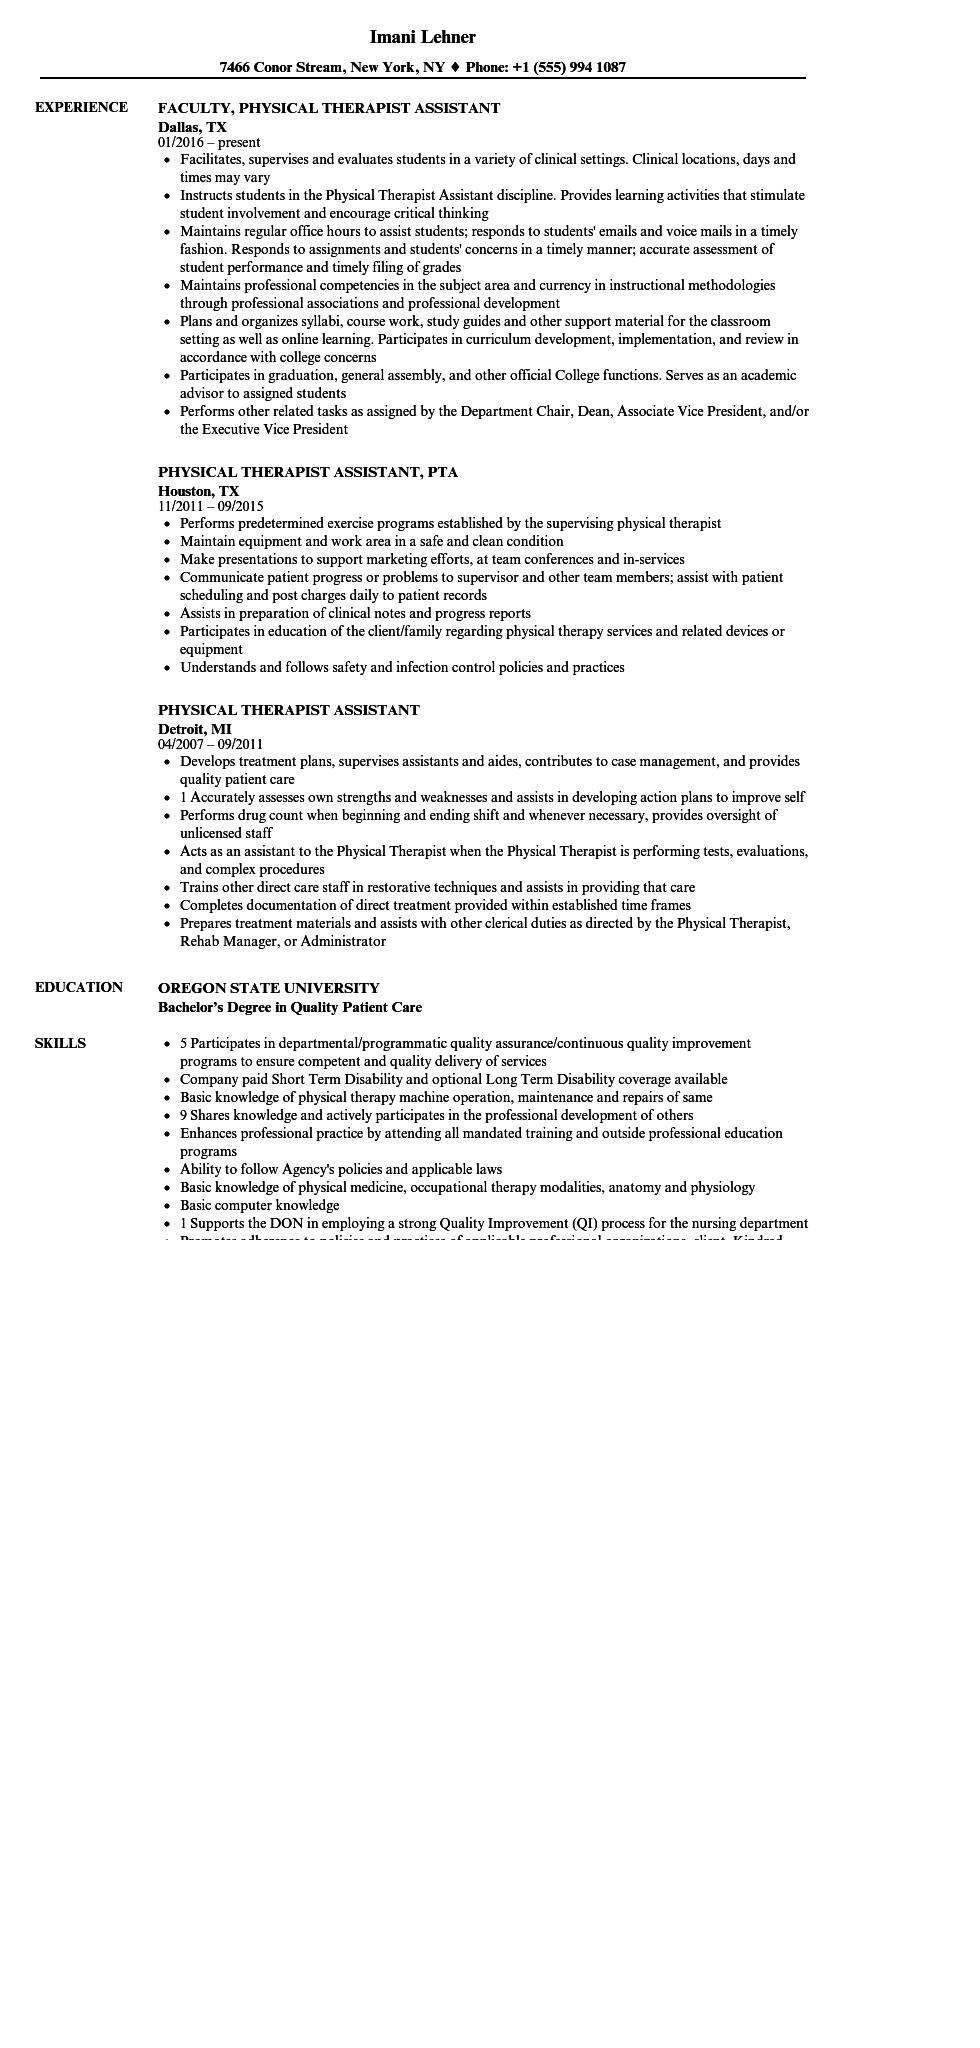 79 New Physical Therapist Assistant Resume with Pictures